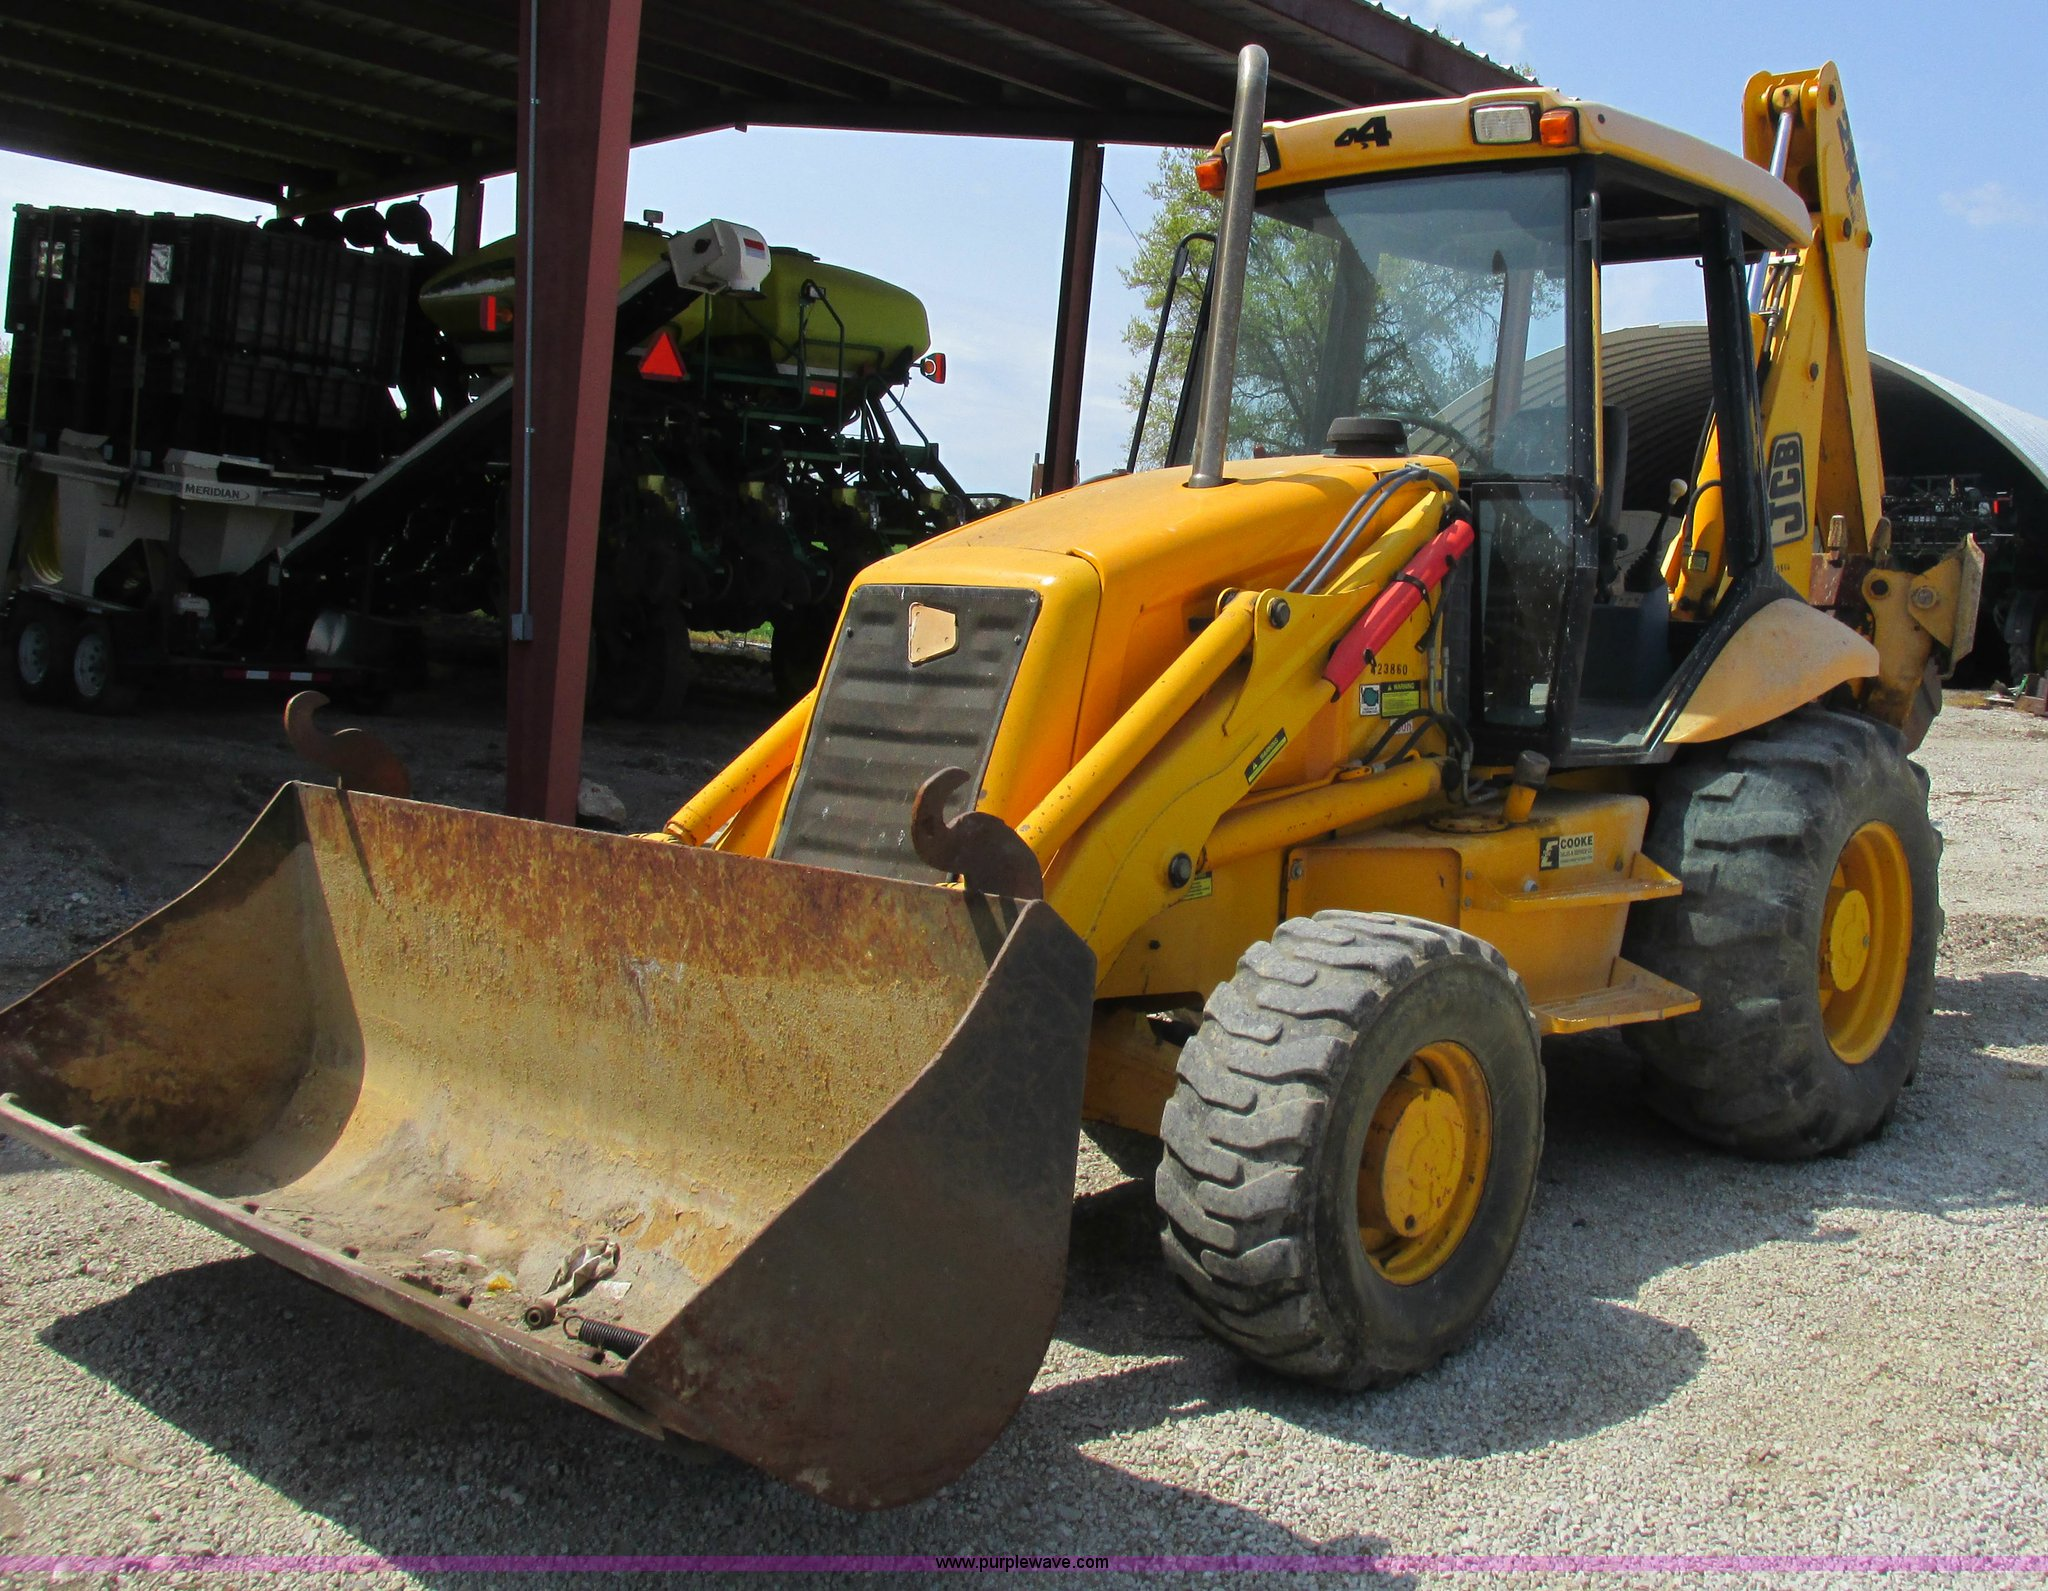 2002 JCB 214 backhoe | Item K2110 | SOLD! May 28 Constructio